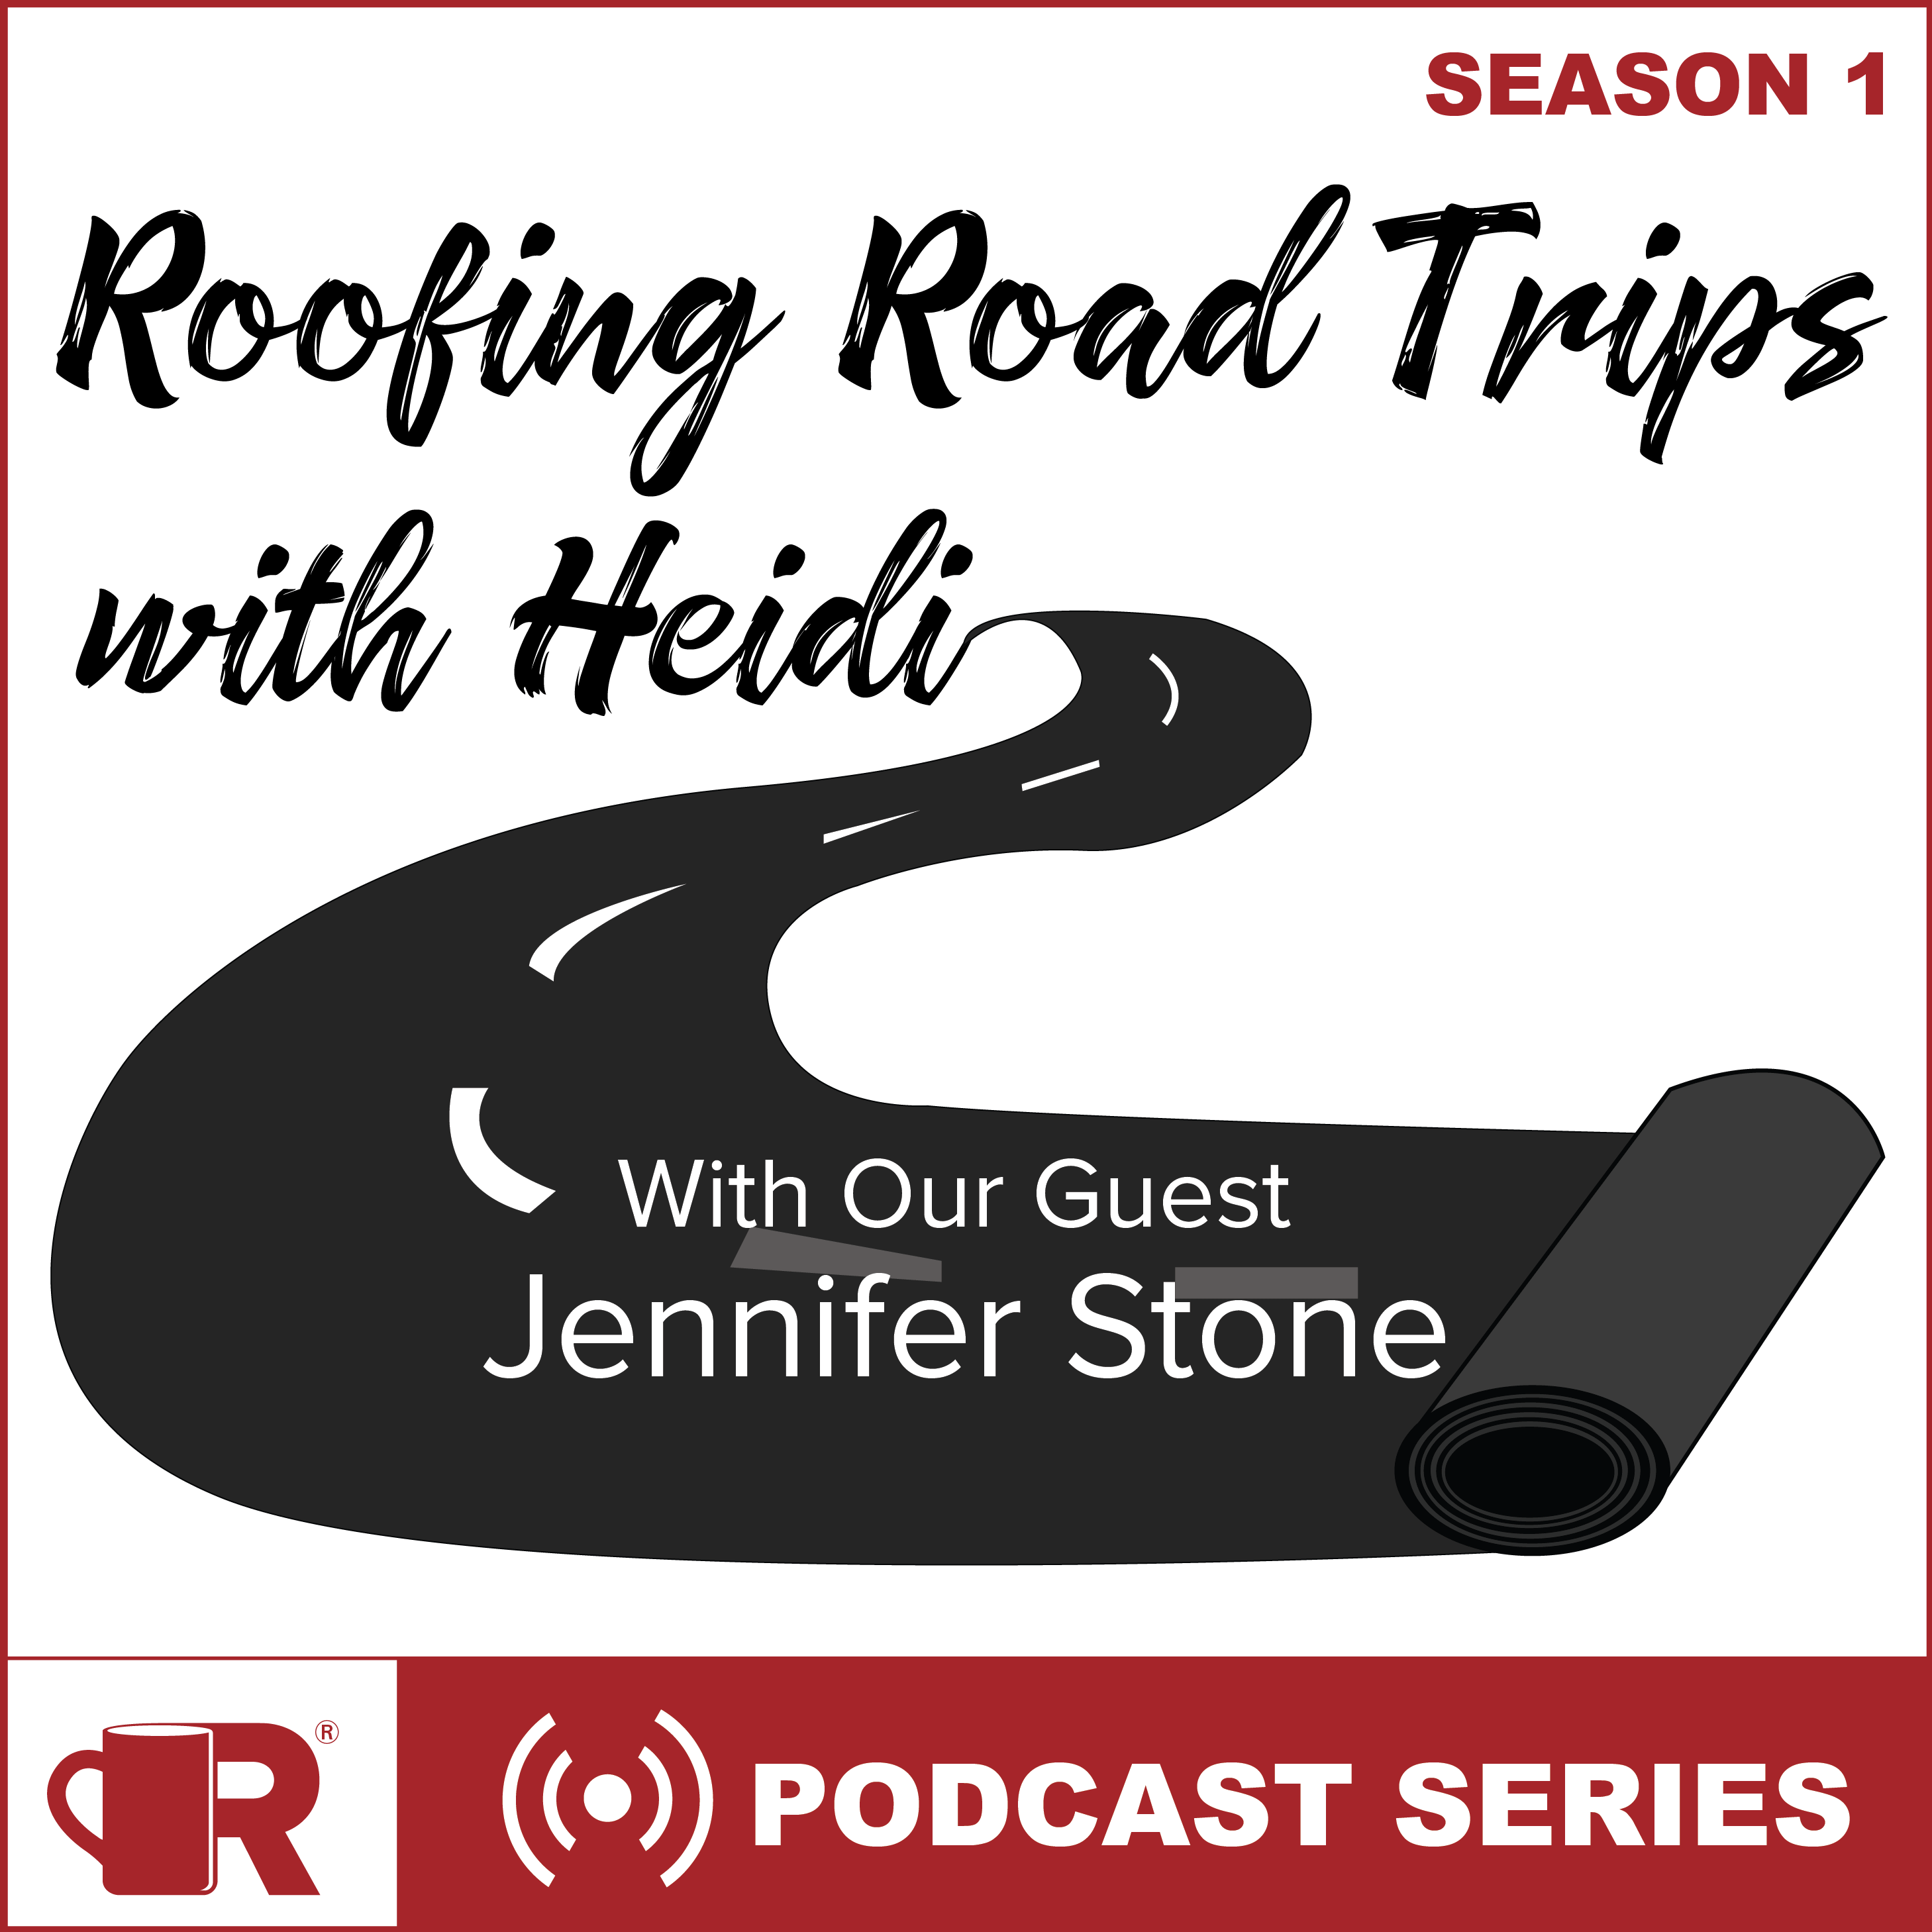 Roofing Road Trips with Heidi- Roofing Day 2019 with Jennifer Stone